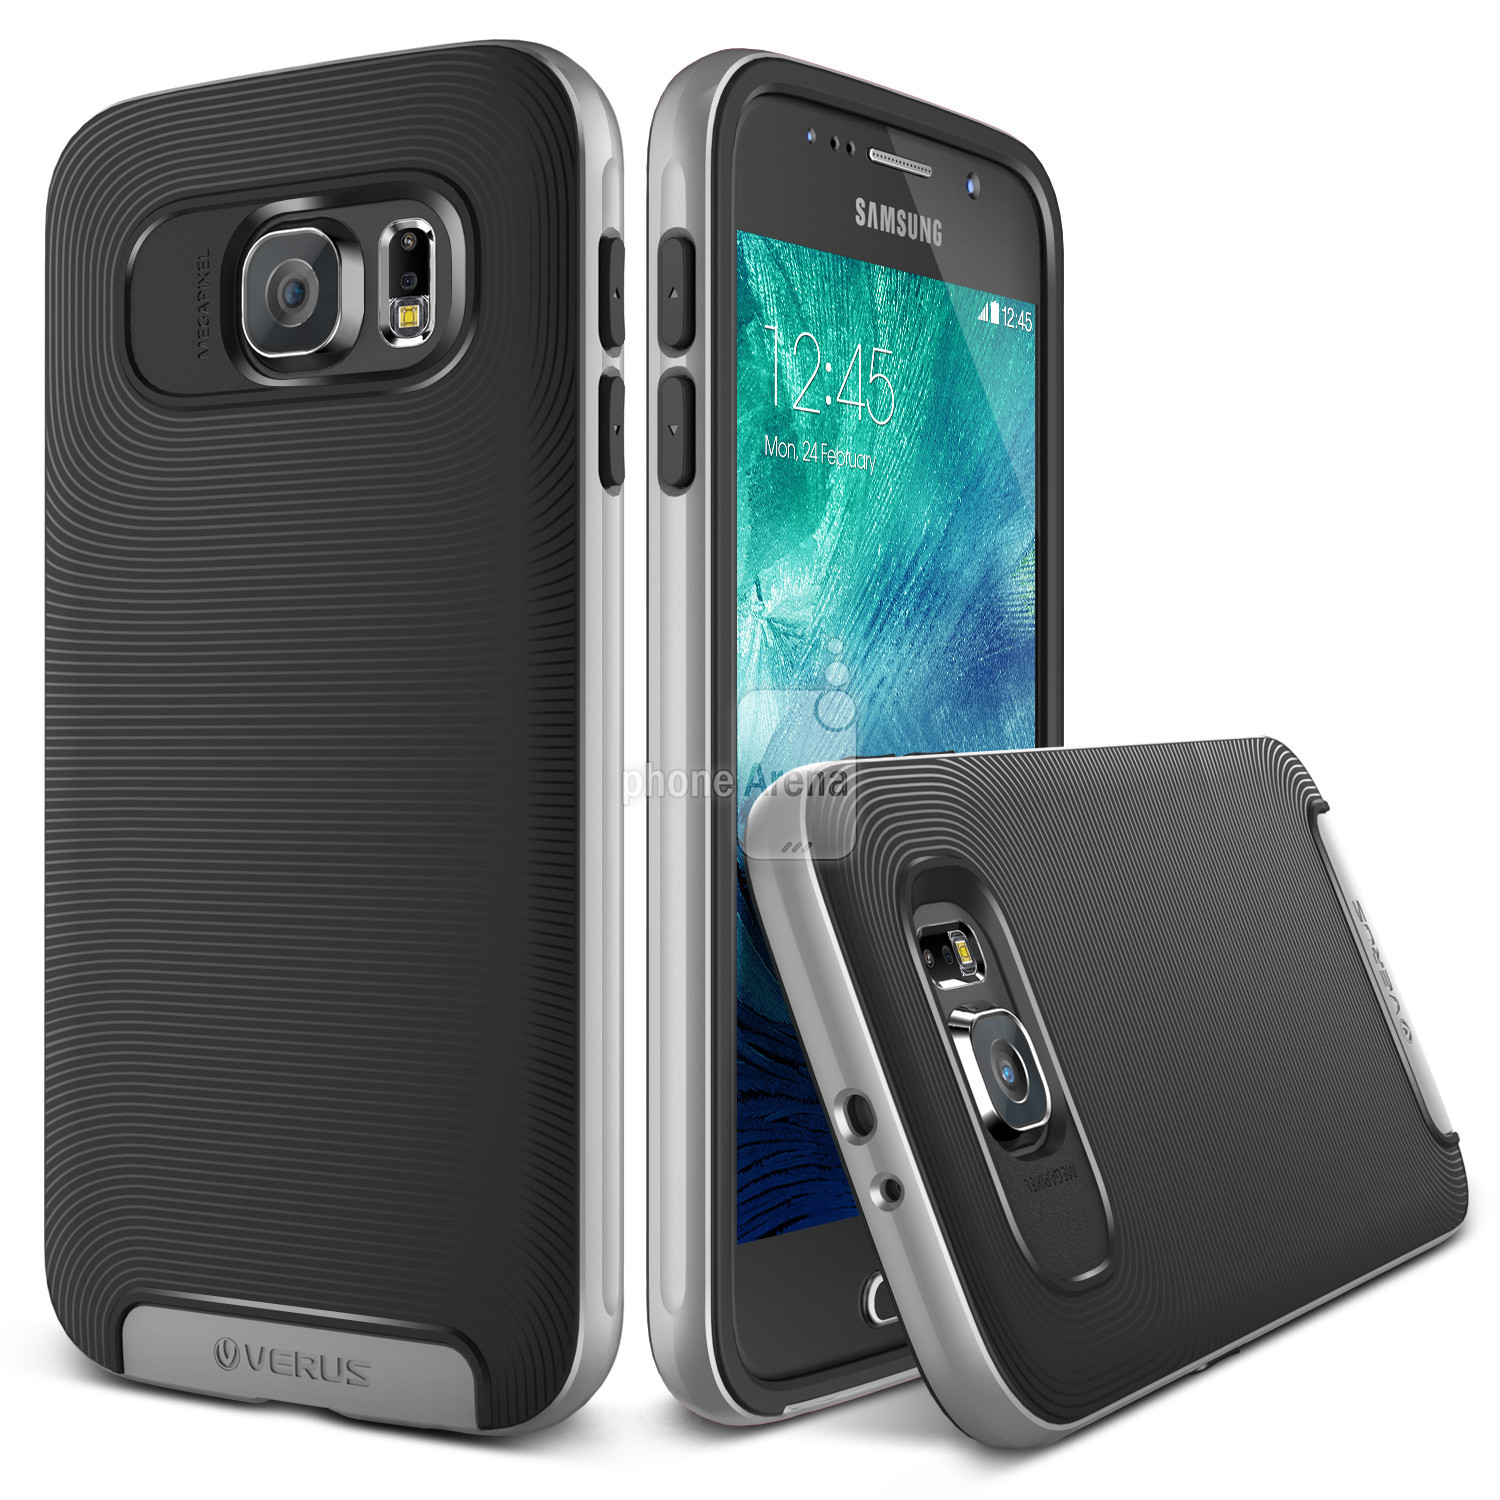 1423133343_galaxy-s6-case-renders.jpg